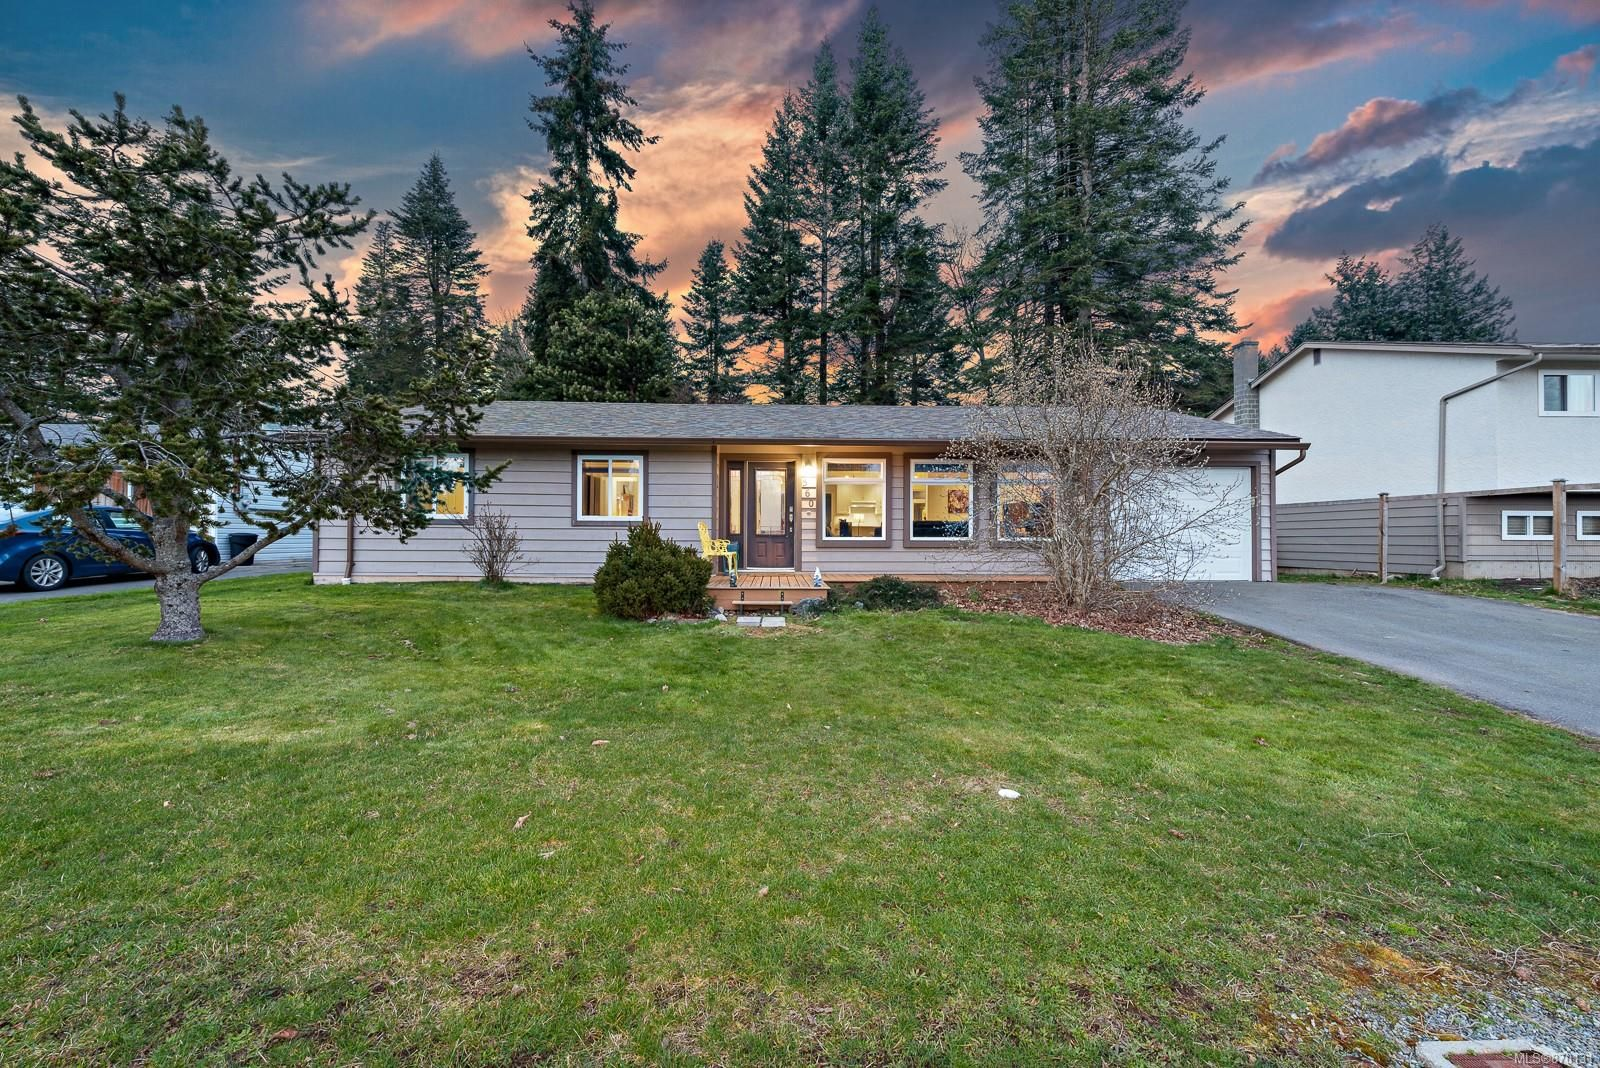 Main Photo: 560 Nimpkish St in : CV Comox (Town of) House for sale (Comox Valley)  : MLS®# 870131